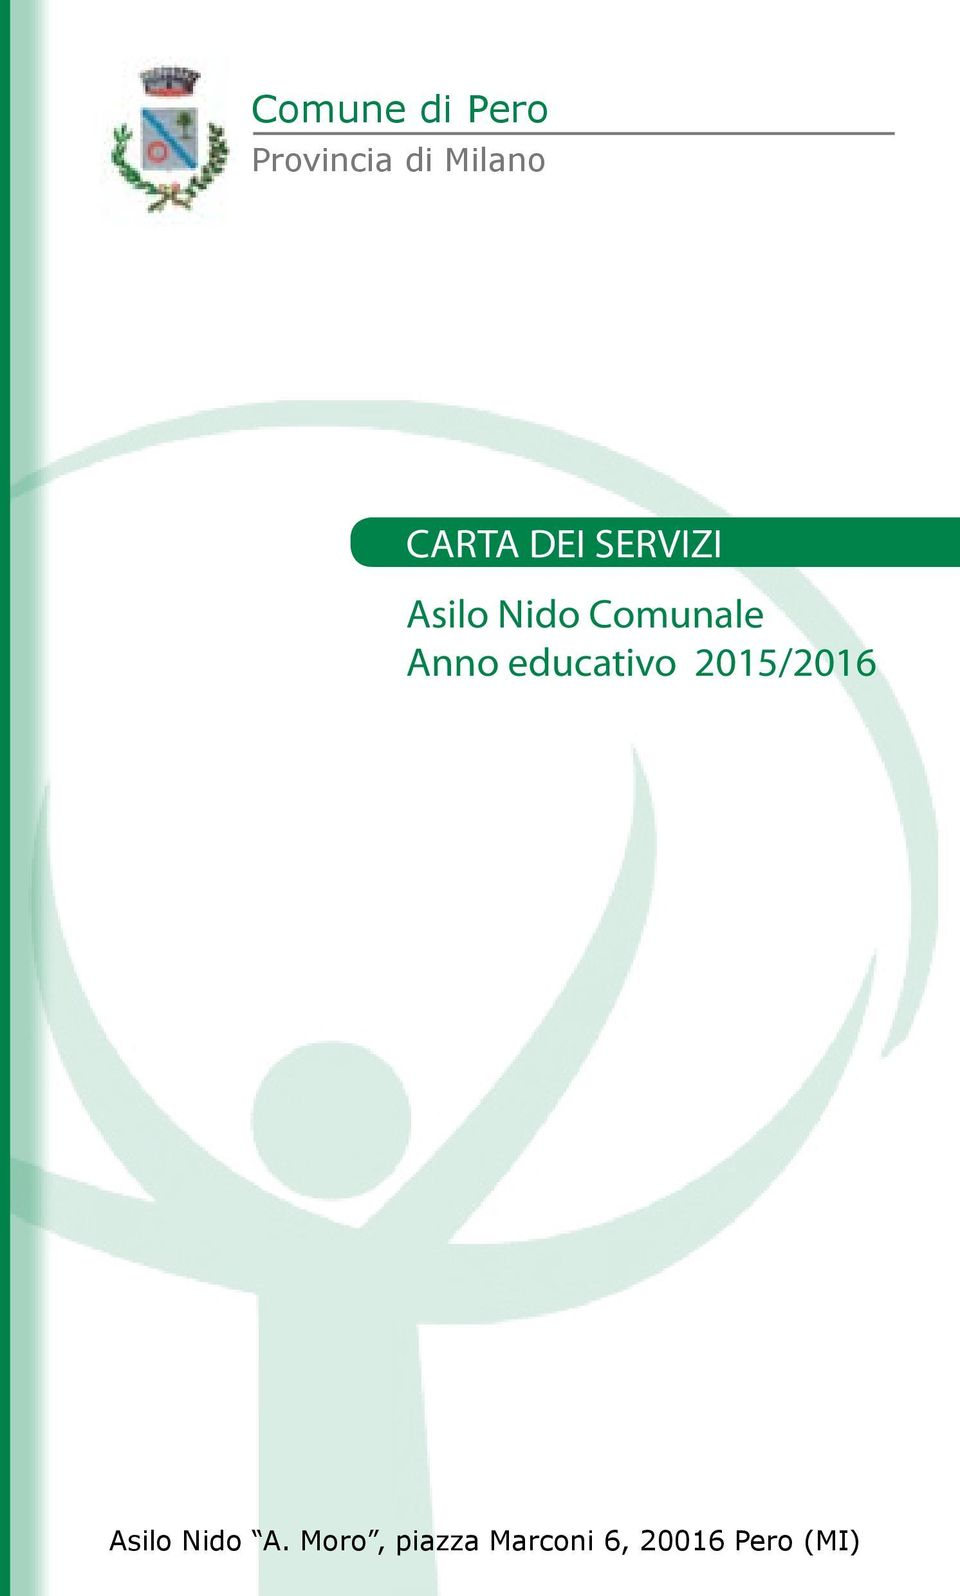 educativo 2015/2016 Asilo Nido A.